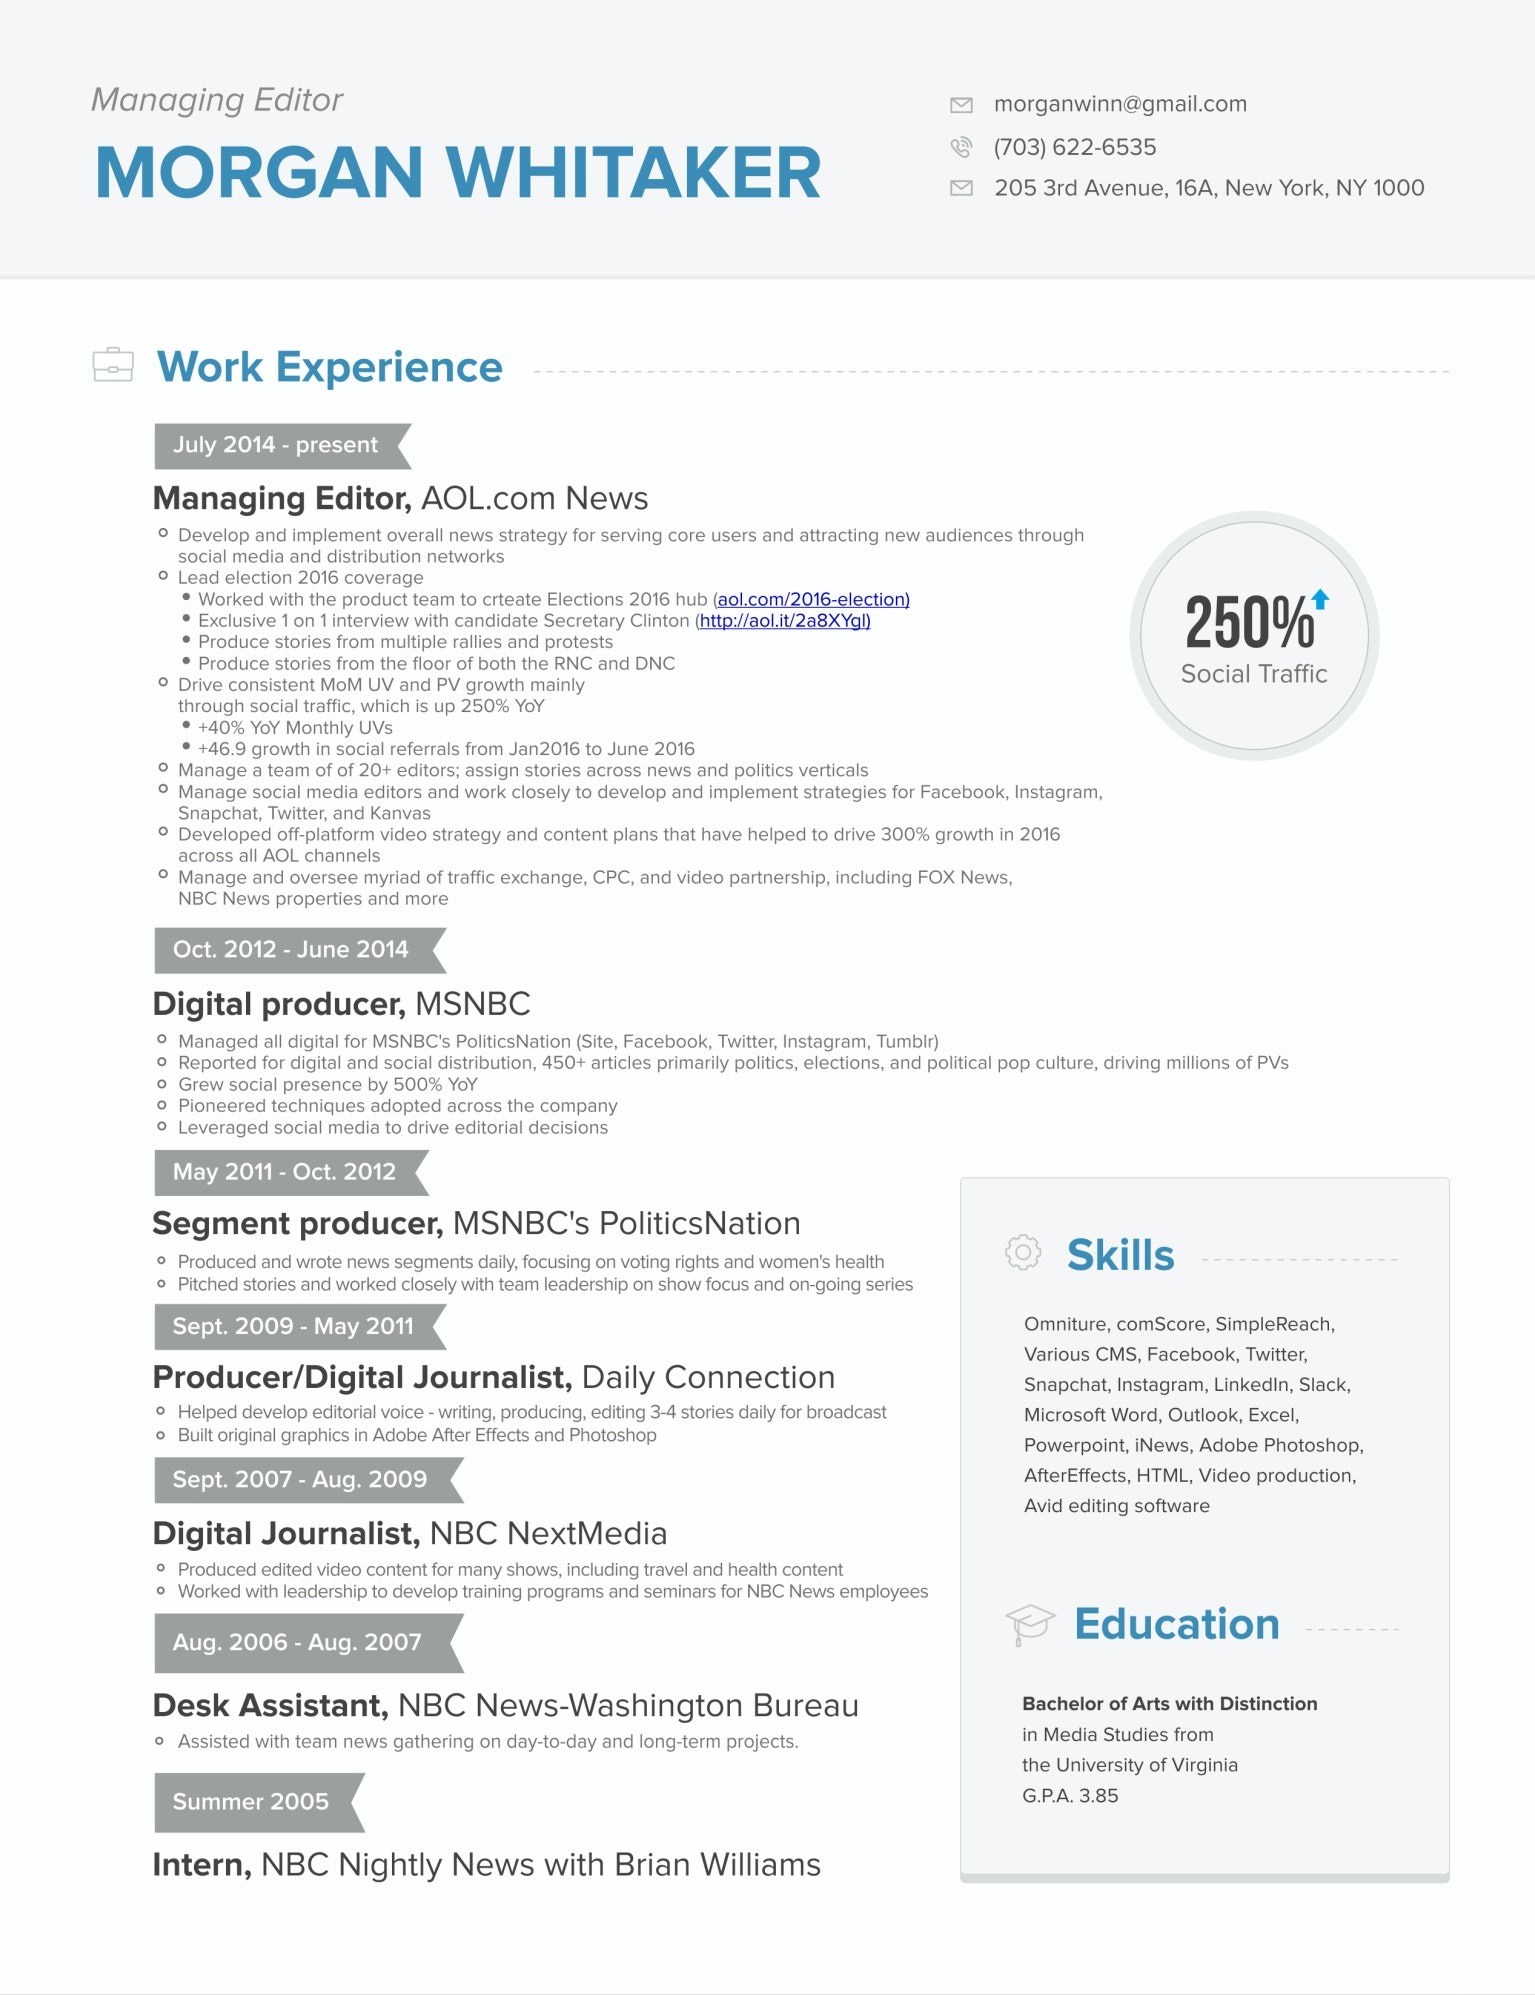 Great Looking Basic Resume Design With Skills, Education And Major  Accomplishment Offset. CV Resume By Hadinsuk For News Manager.  Great Looking Resumes